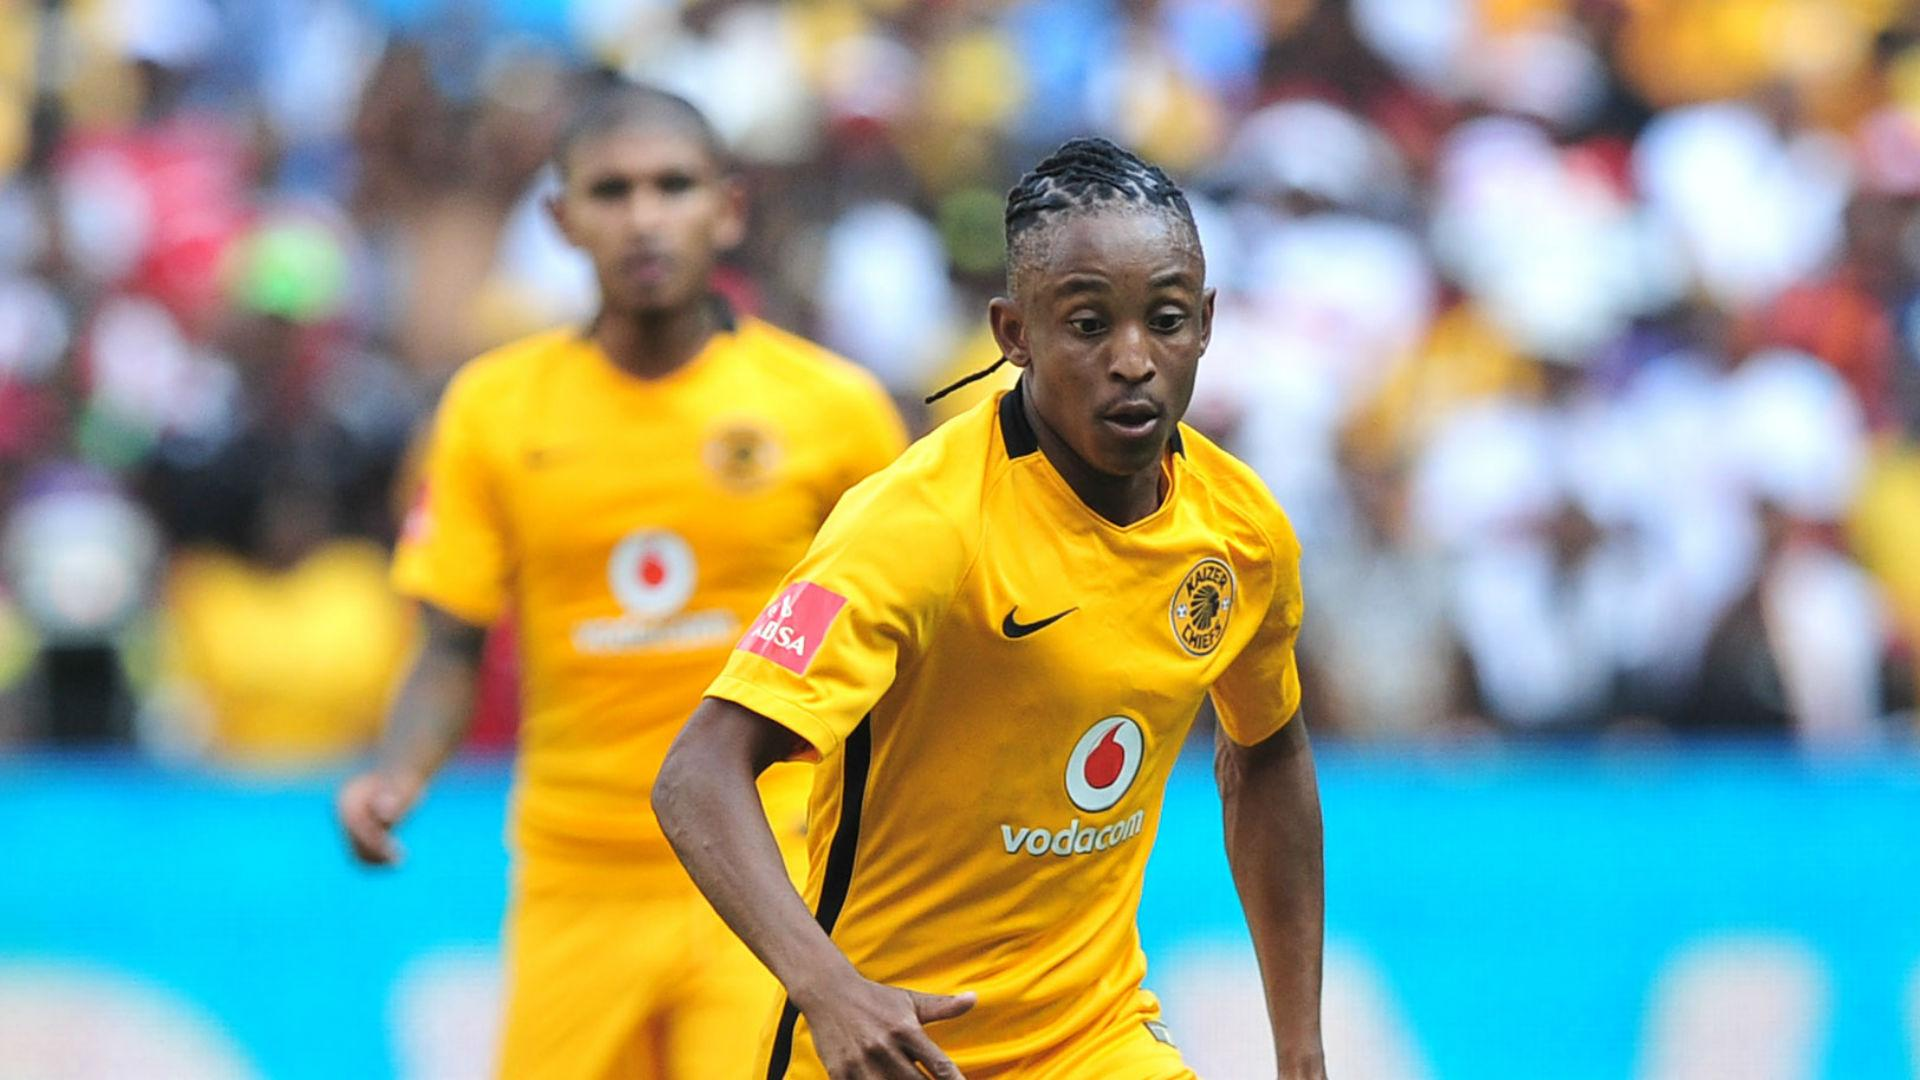 EXTRA TIME: Kaizer Chiefs' Pule Ekstein could be a model